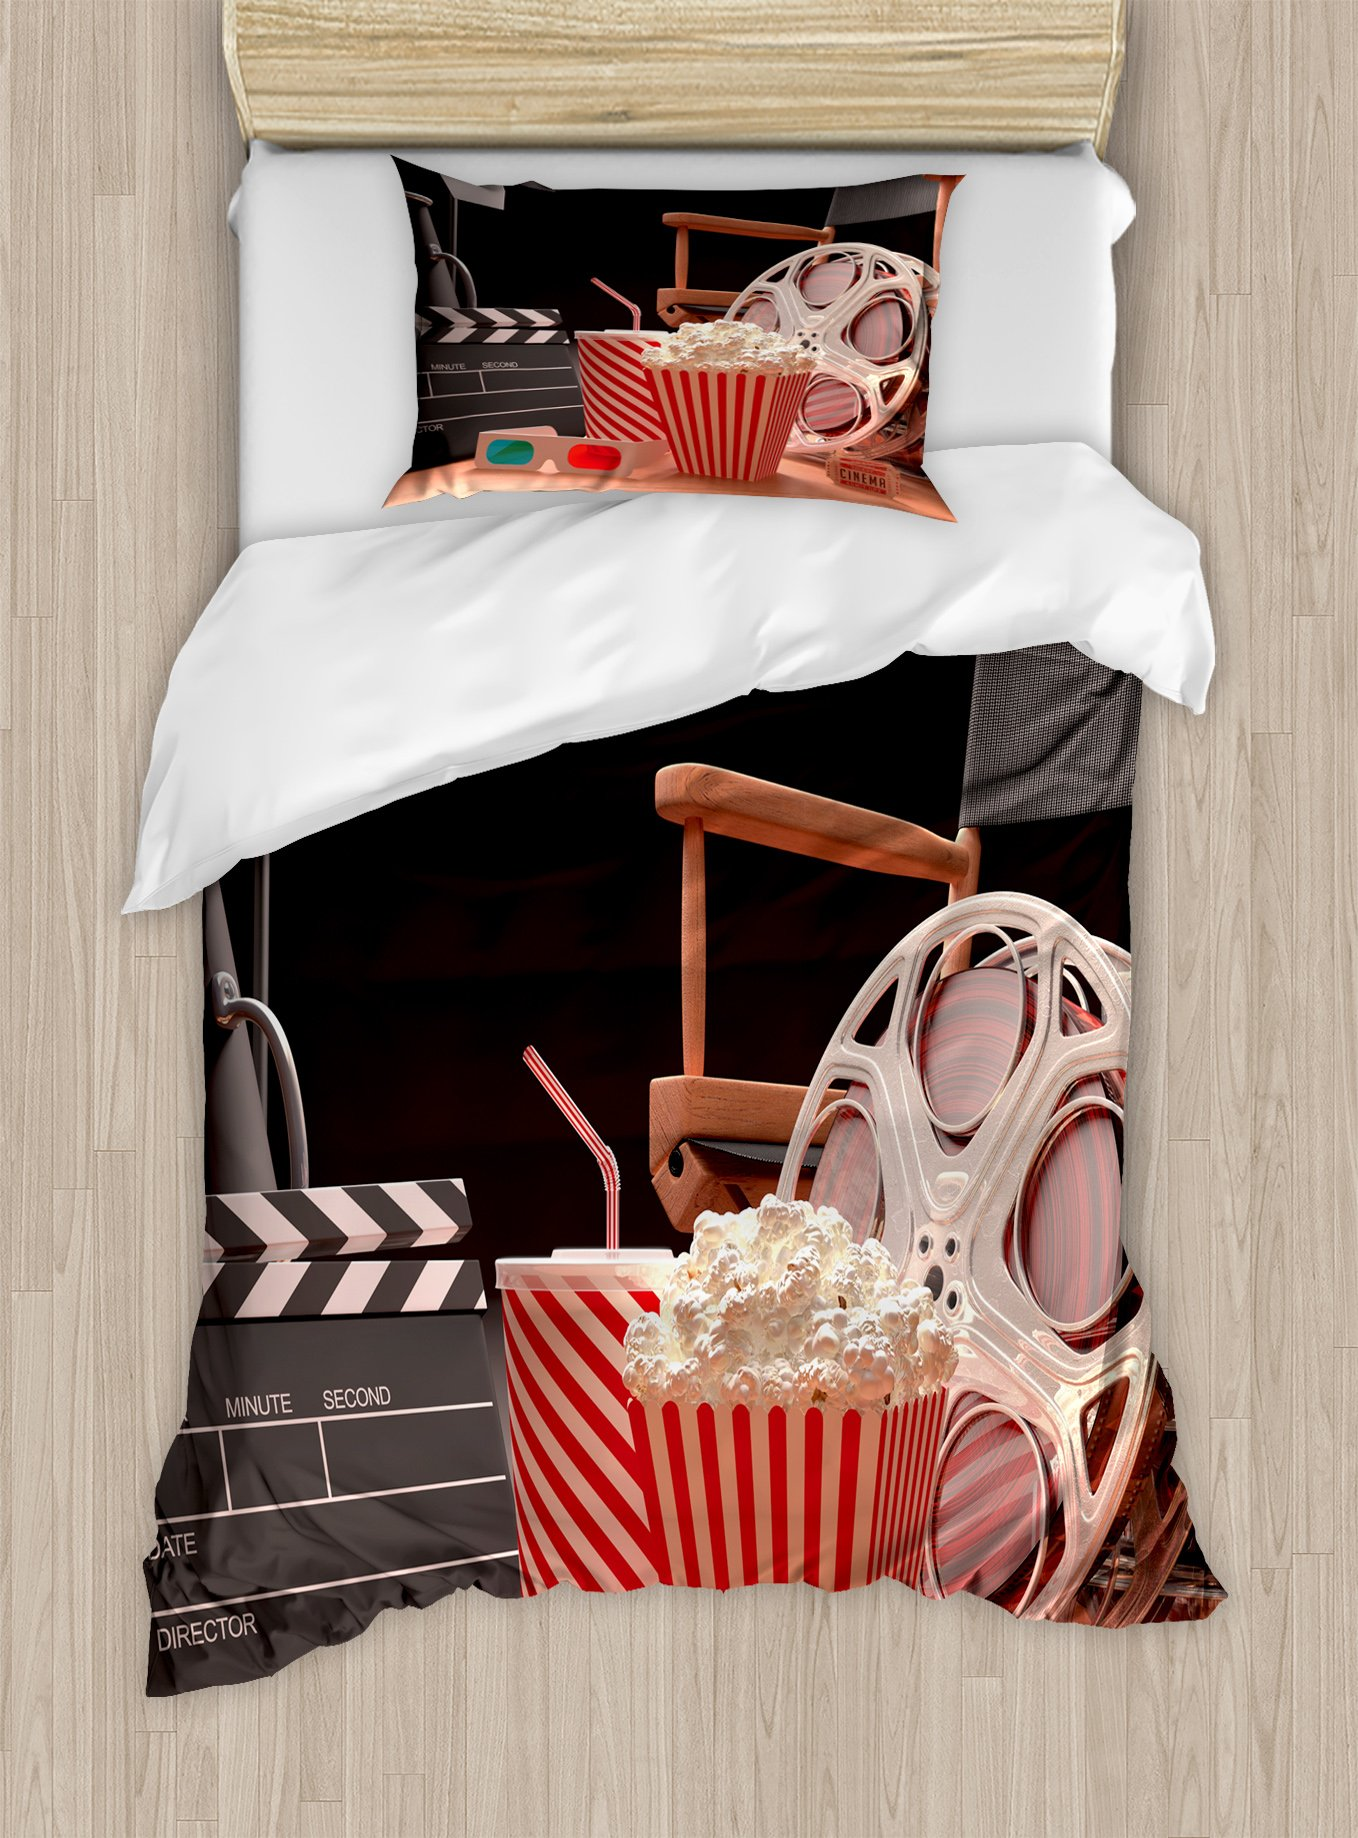 Ambesonne Movie Theater Twin Size Duvet Cover Set, Objects of The Film Industry Hollywood Motion Picture Cinematography Concept, Decorative 2 Piece Bedding Set with 1 Pillow Sham, Multicolor